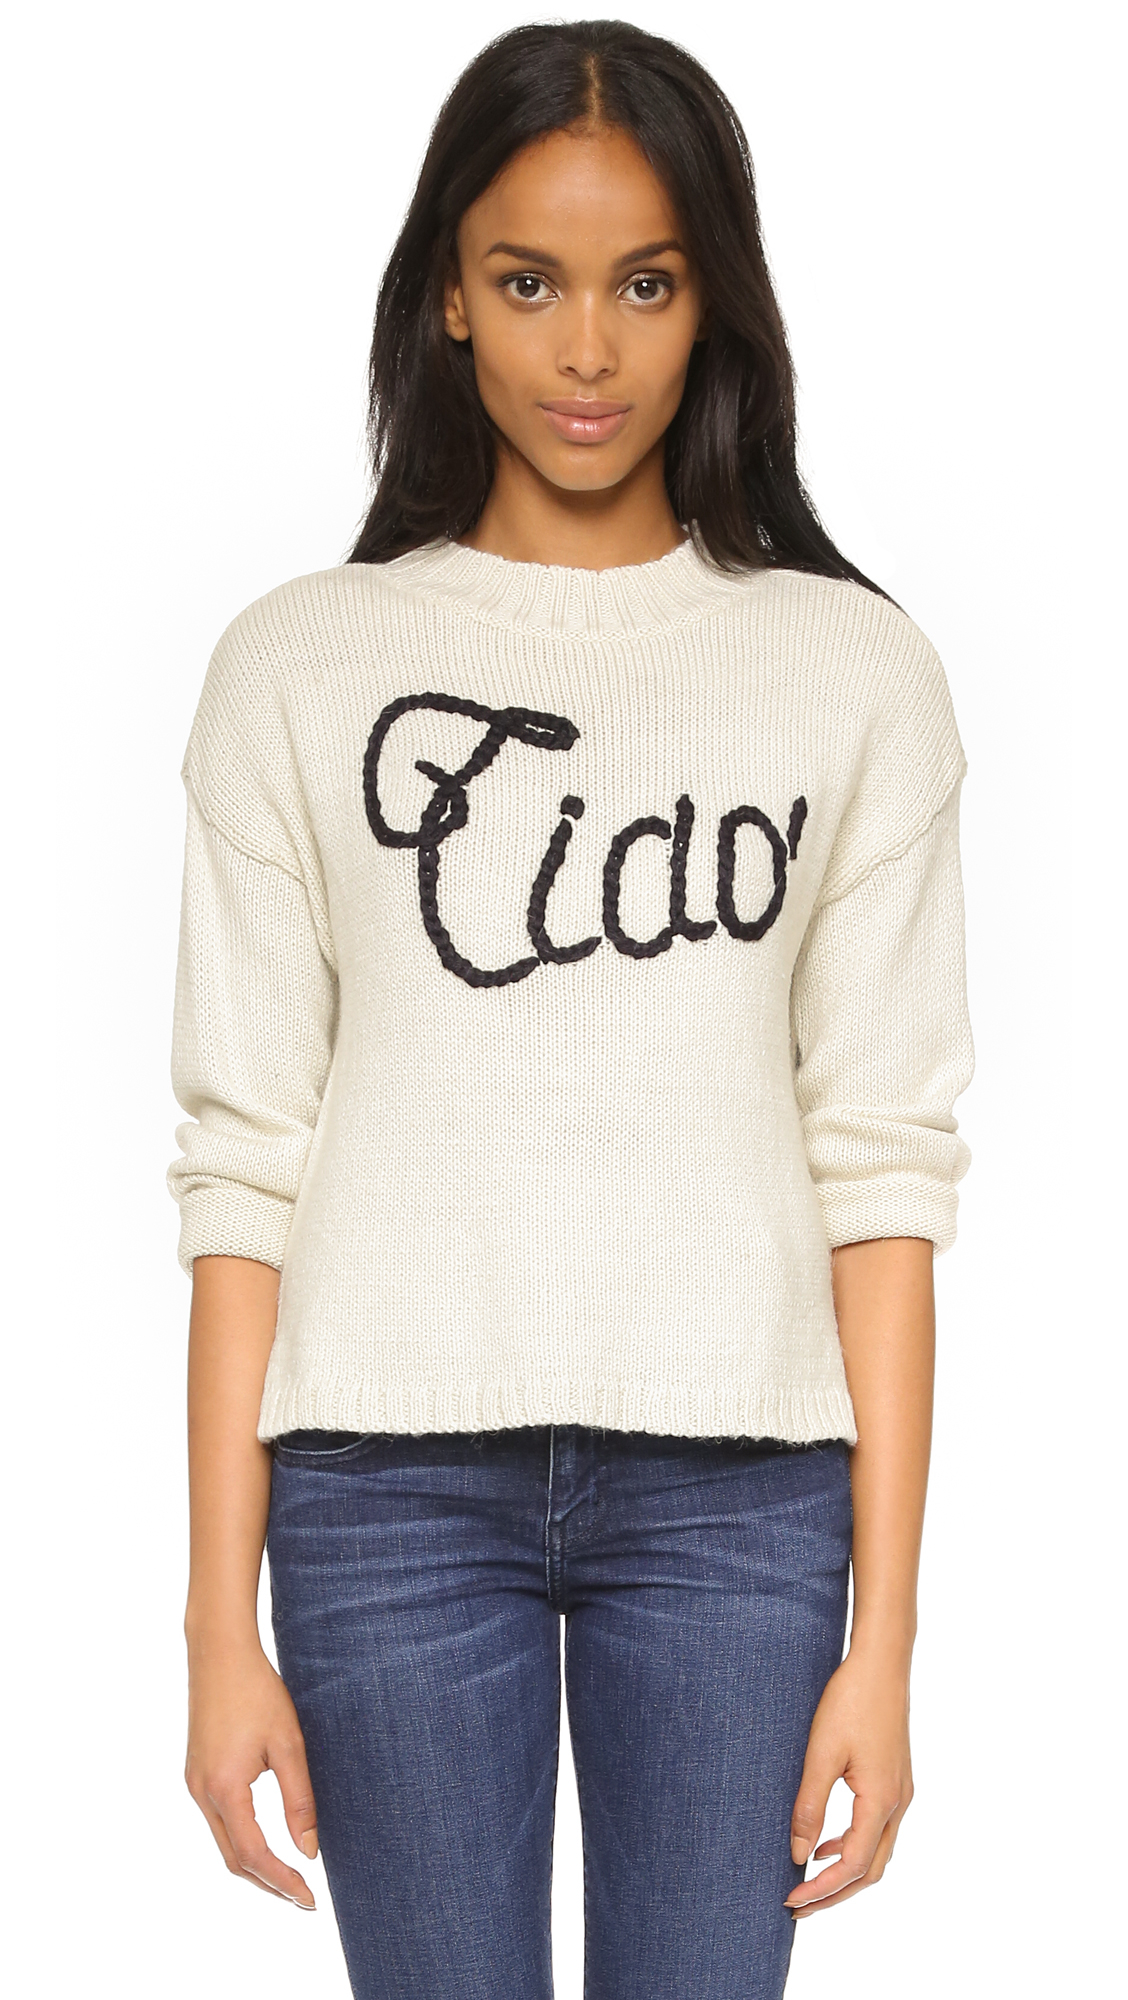 WildfoxWomen's Natural Ciao Bella Dinner Party Sweater